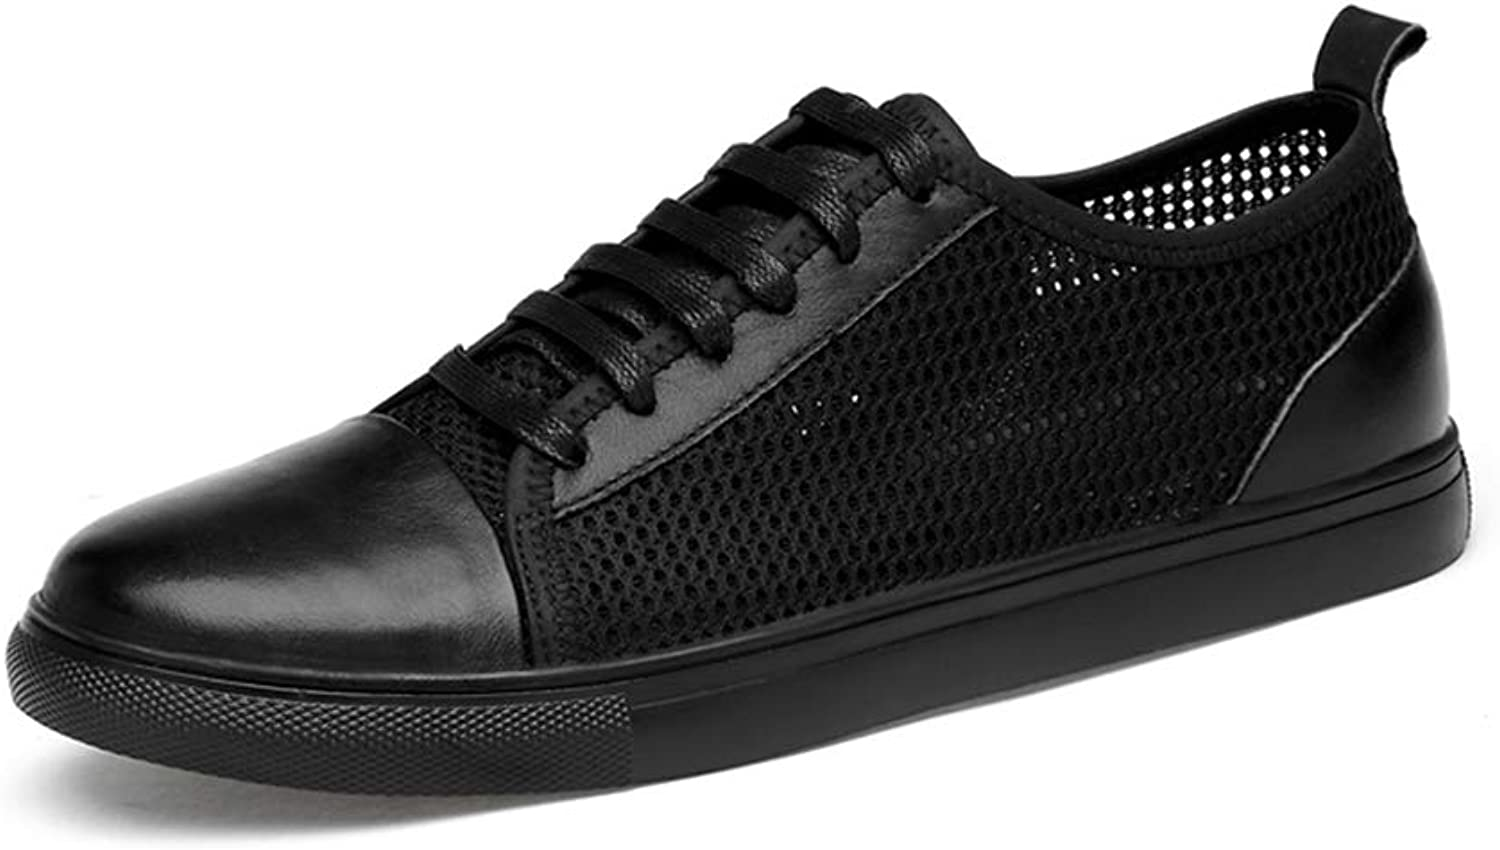 Men's PU Casual shoes Non-slip Breathable Mesh shoes Cozy Front tie Dress shoes Lightweight Low help Sneakers,Black,38